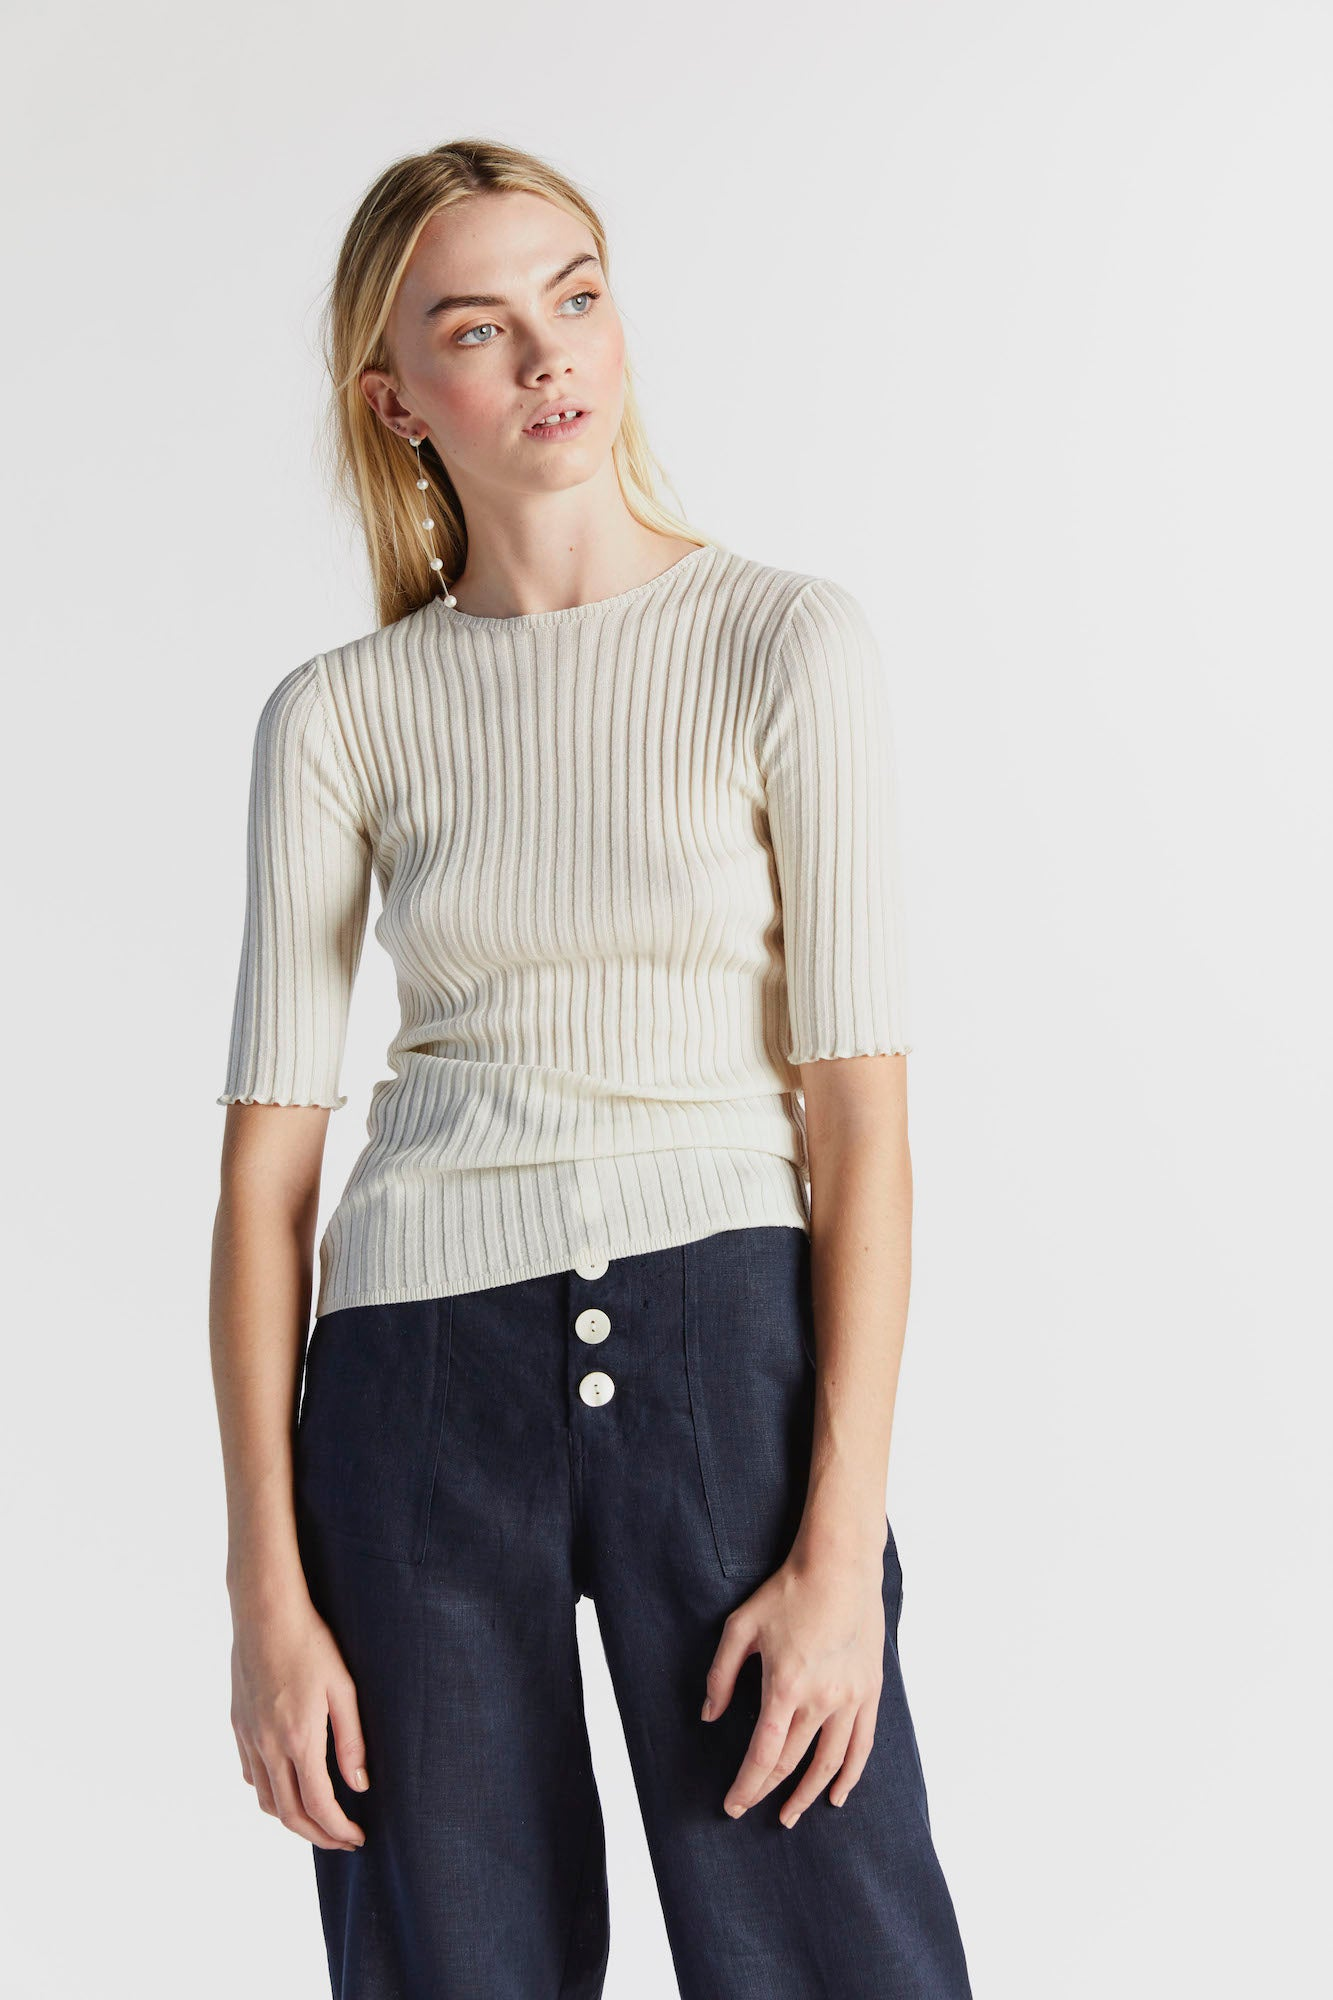 Good Day Barclay Knit in Ivory - hej hej